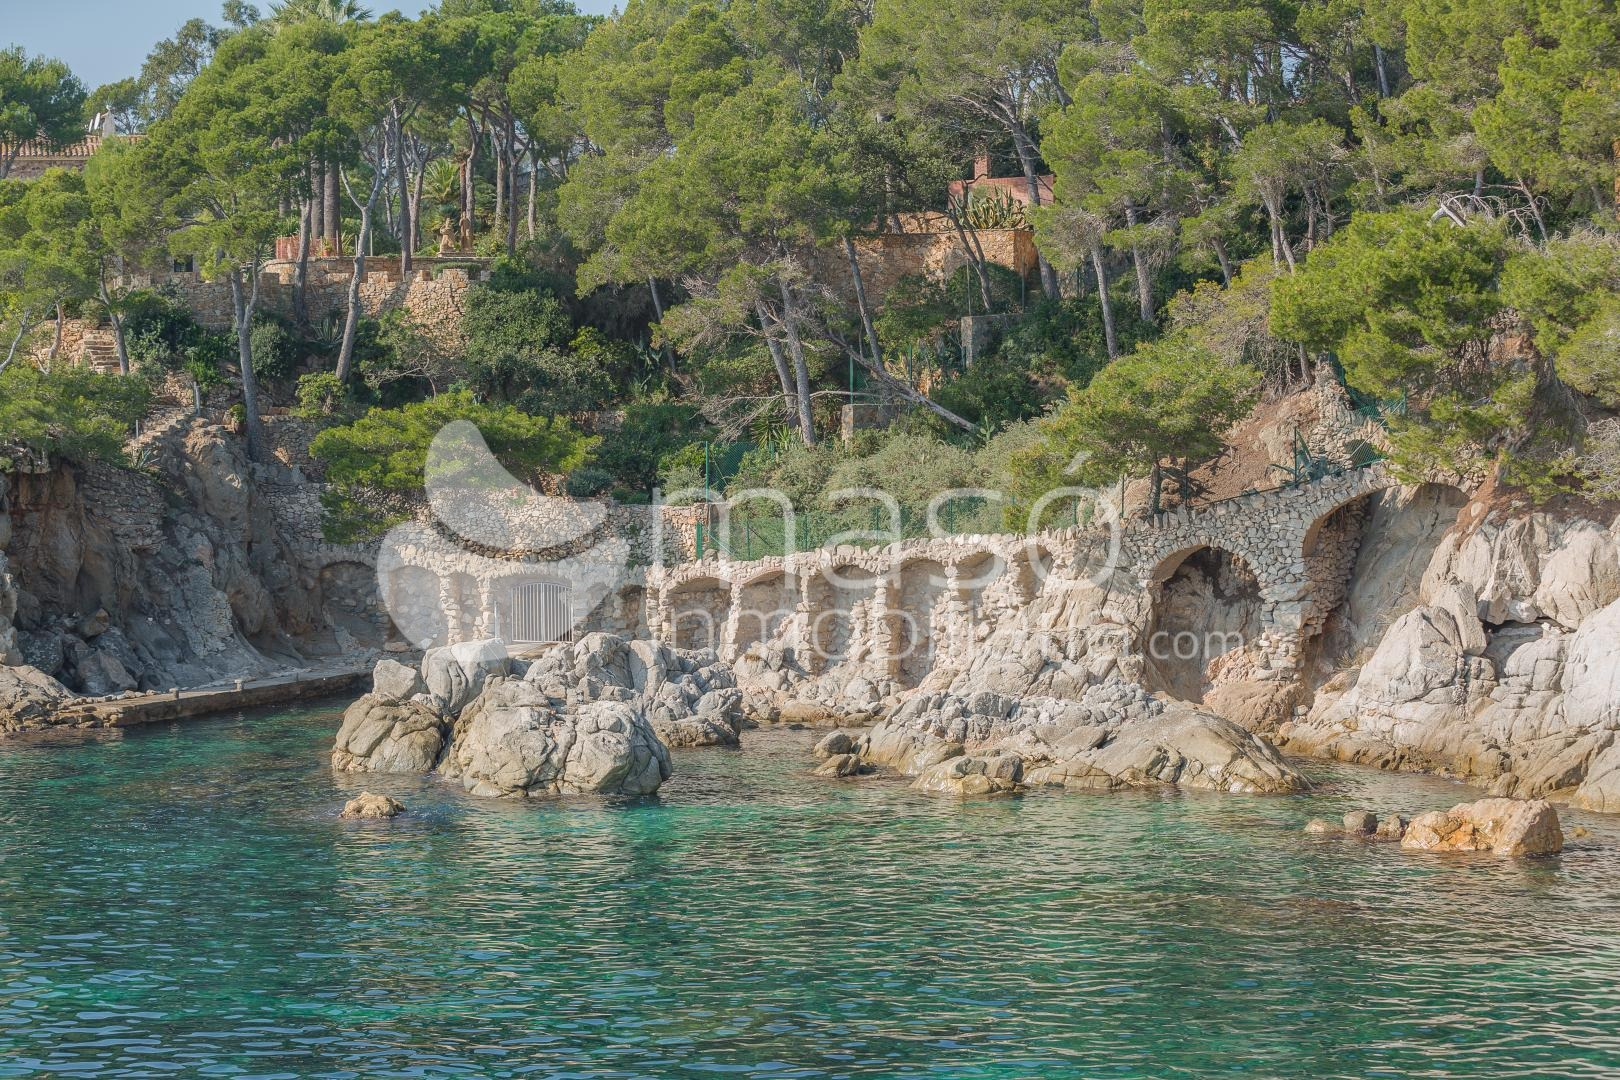 What taxes do I have to pay when buying or selling a house in the Costa Brava as a foreigner?